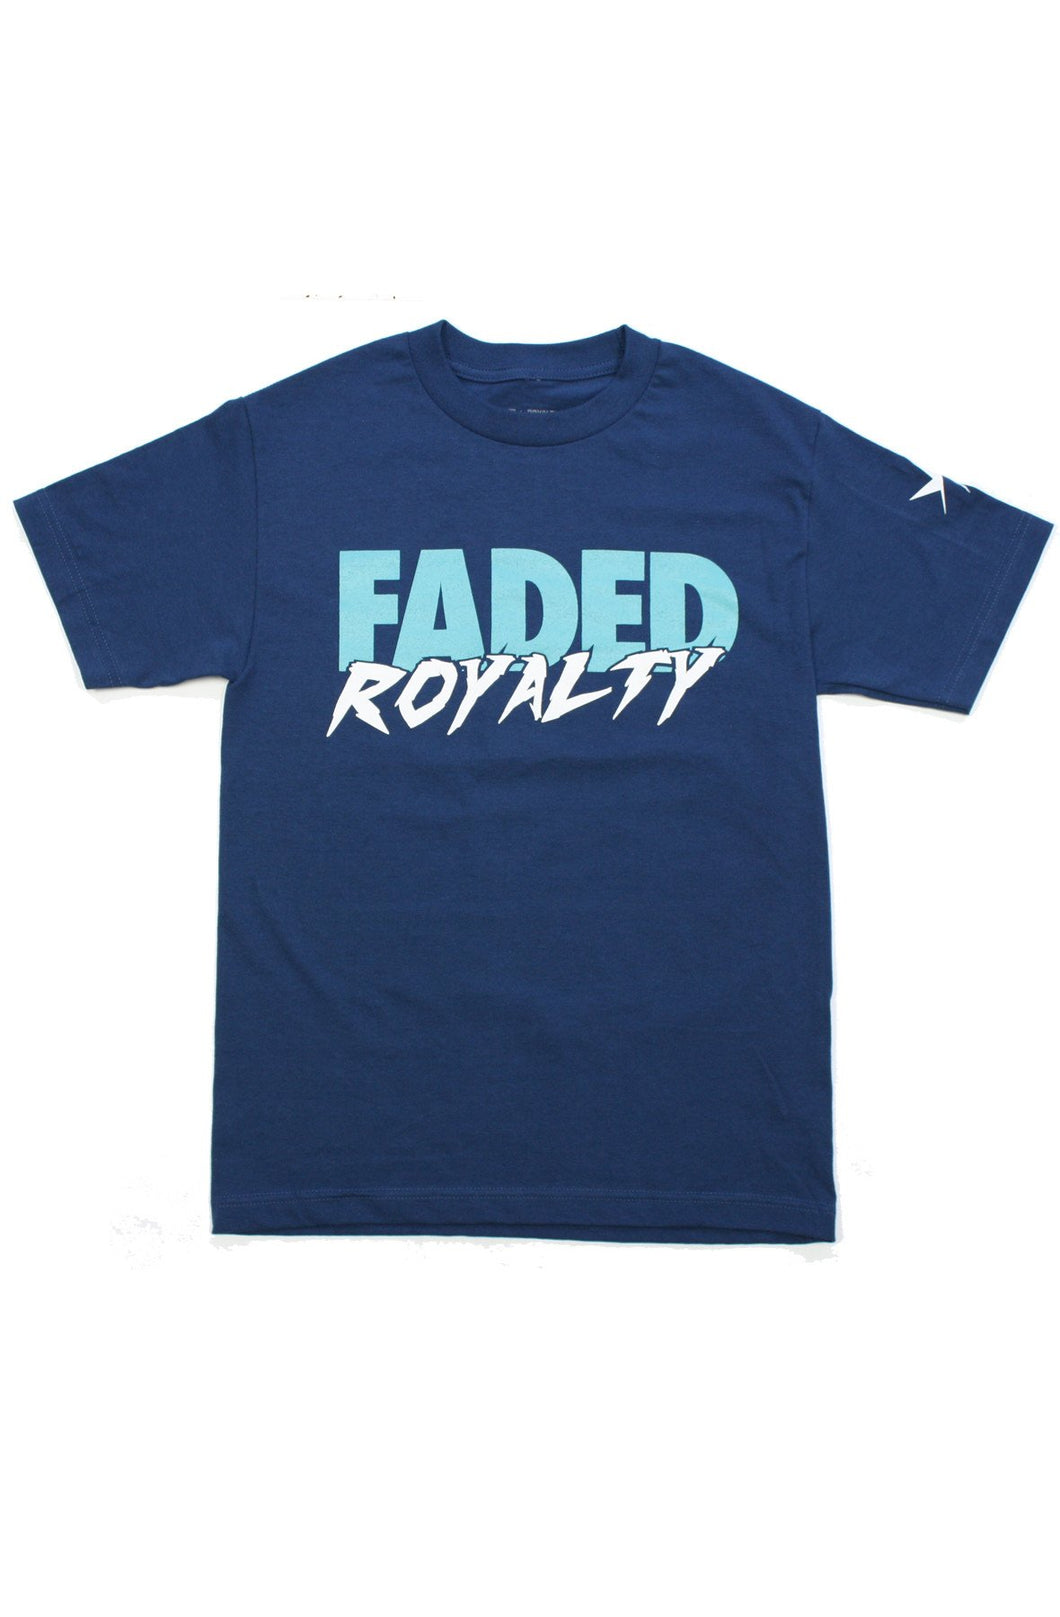 FADED ELECTRIC TSHIRT